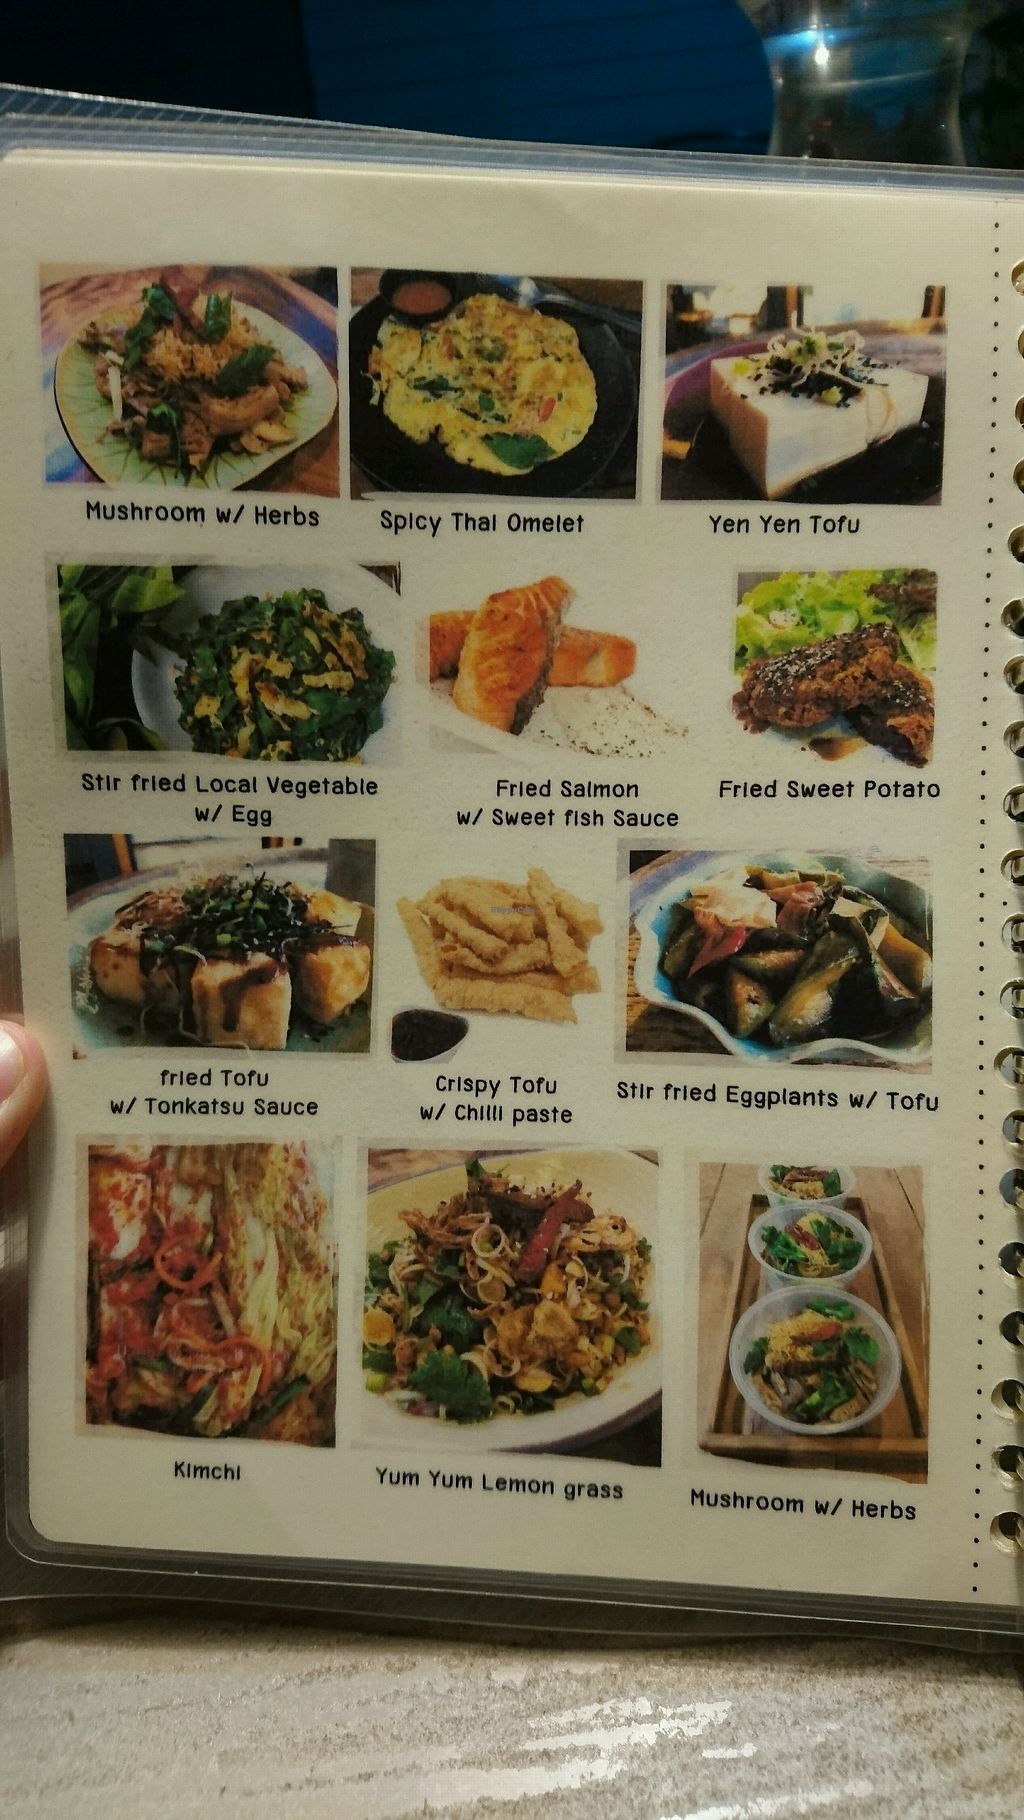 "Photo of Samui Health Shop by Lamphu  by <a href=""/members/profile/AnthonyMTL"">AnthonyMTL</a> <br/>Photos of menu items  <br/> January 2, 2018  - <a href='/contact/abuse/image/36345/342106'>Report</a>"